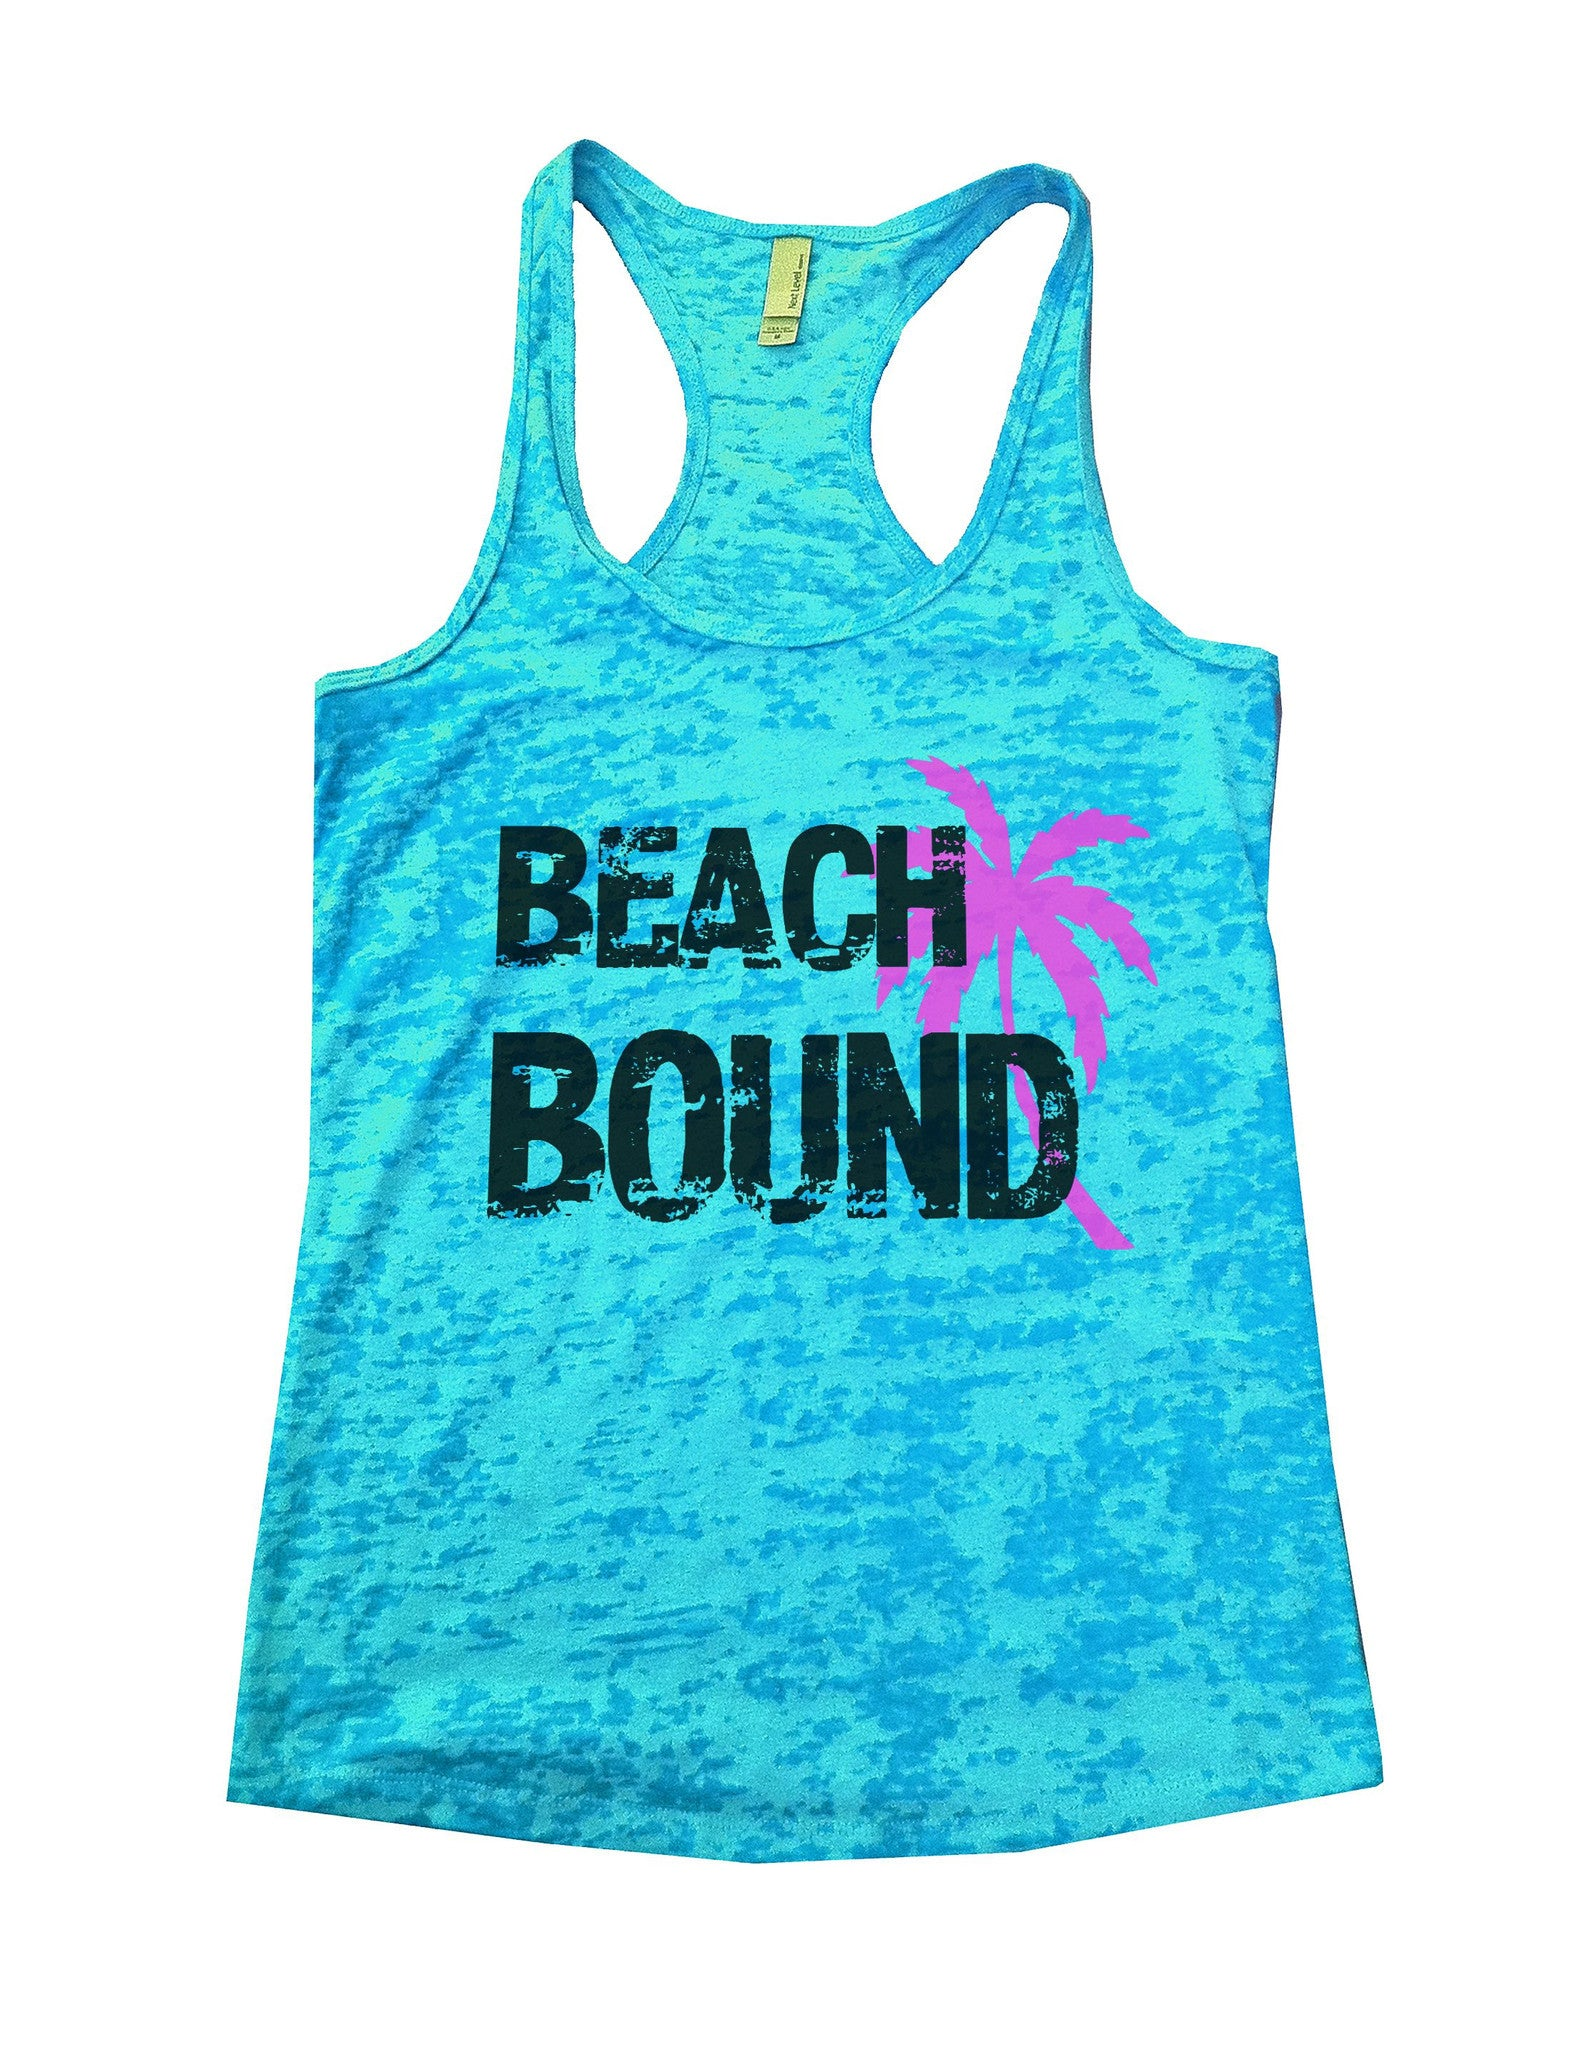 Beach Bound Burnout Tank Top By BurnoutTankTops.com - 748 - Funny Shirts Tank Tops Burnouts and Triblends  - 4